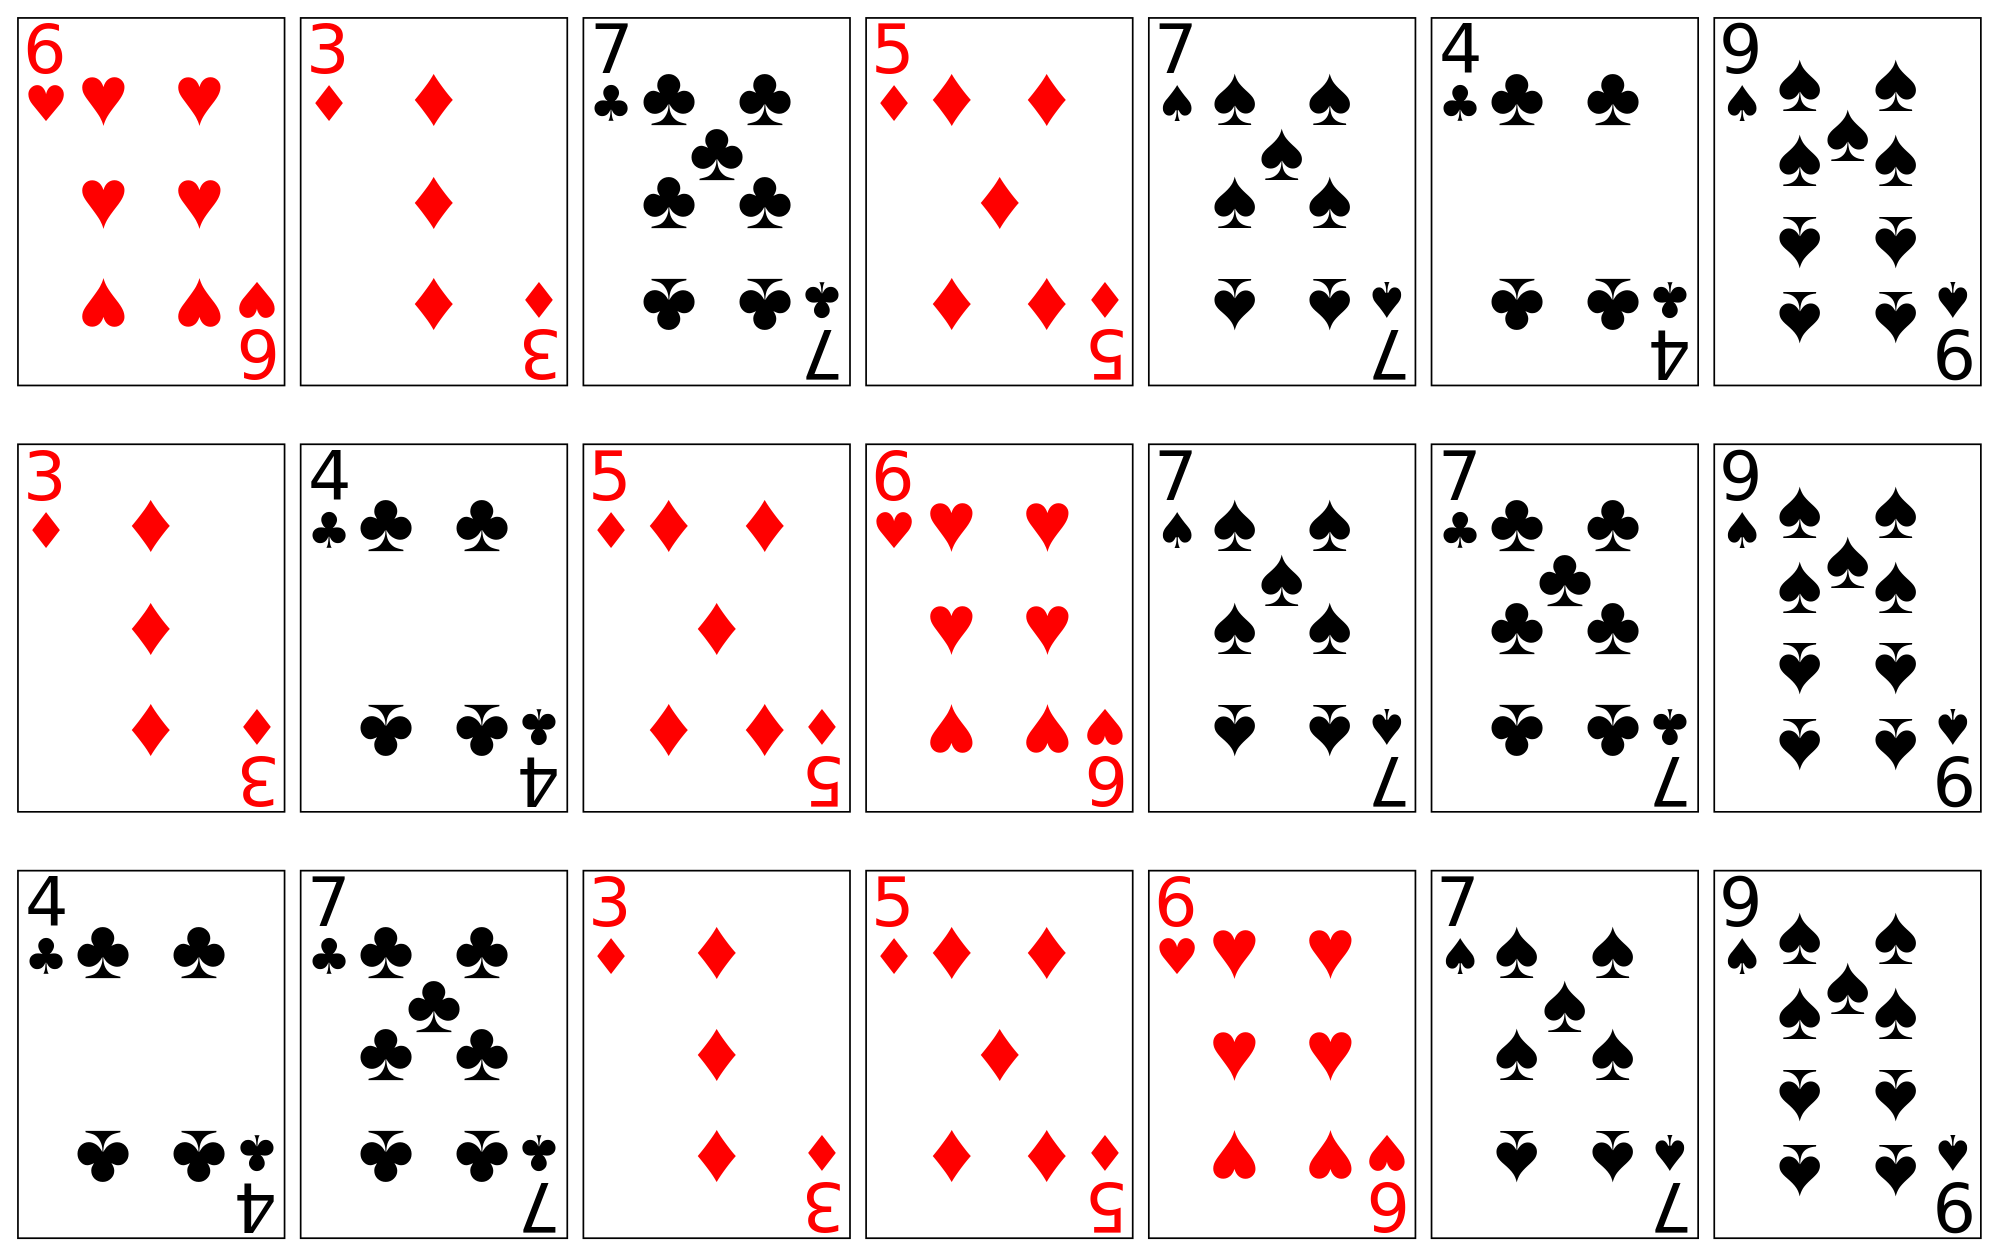 Full deck of cards png. File sorting playing using